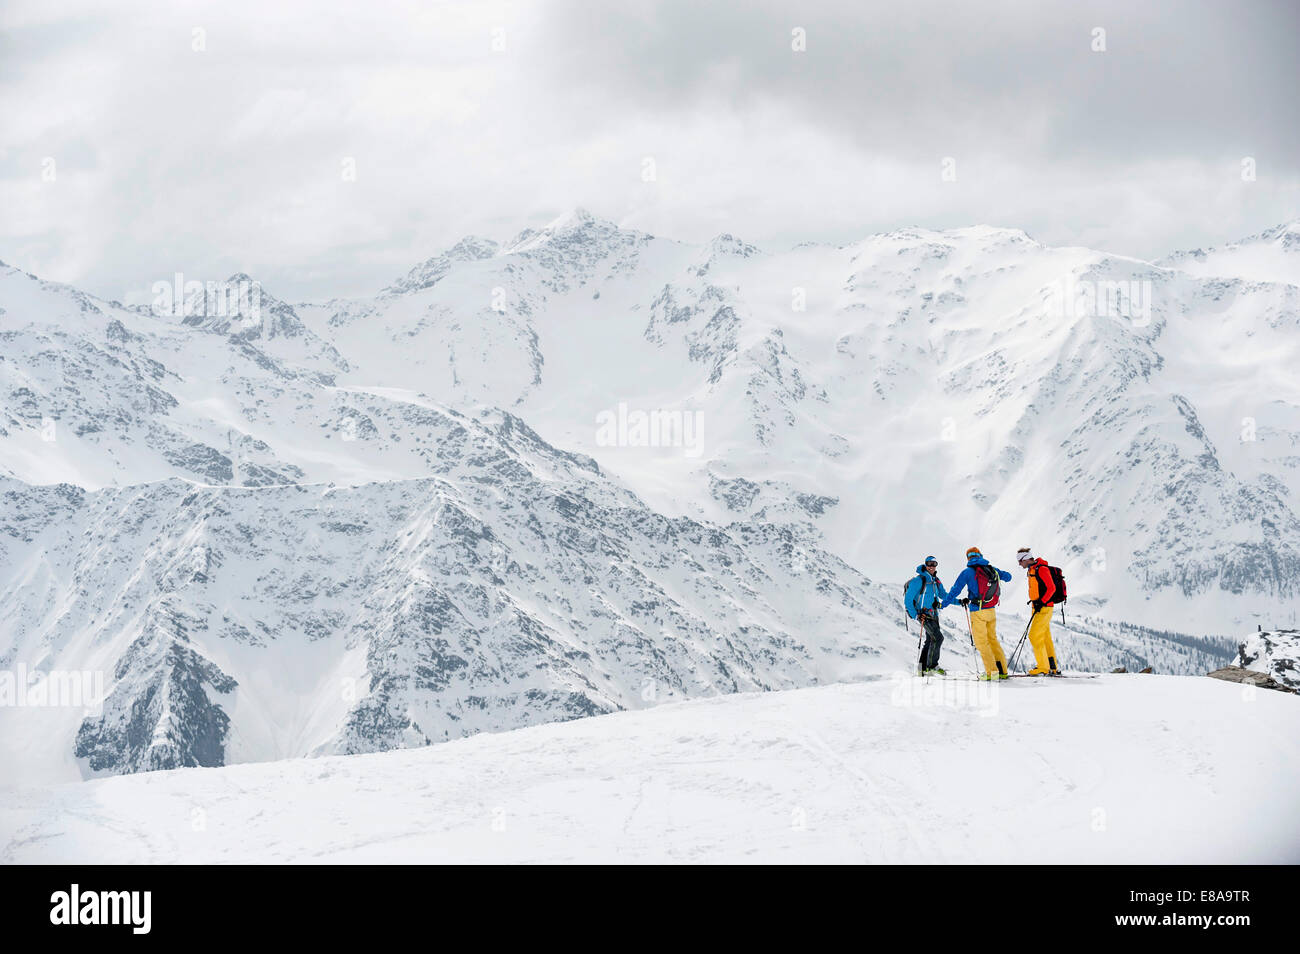 Alps winter mountains three skiers snow - Stock Image